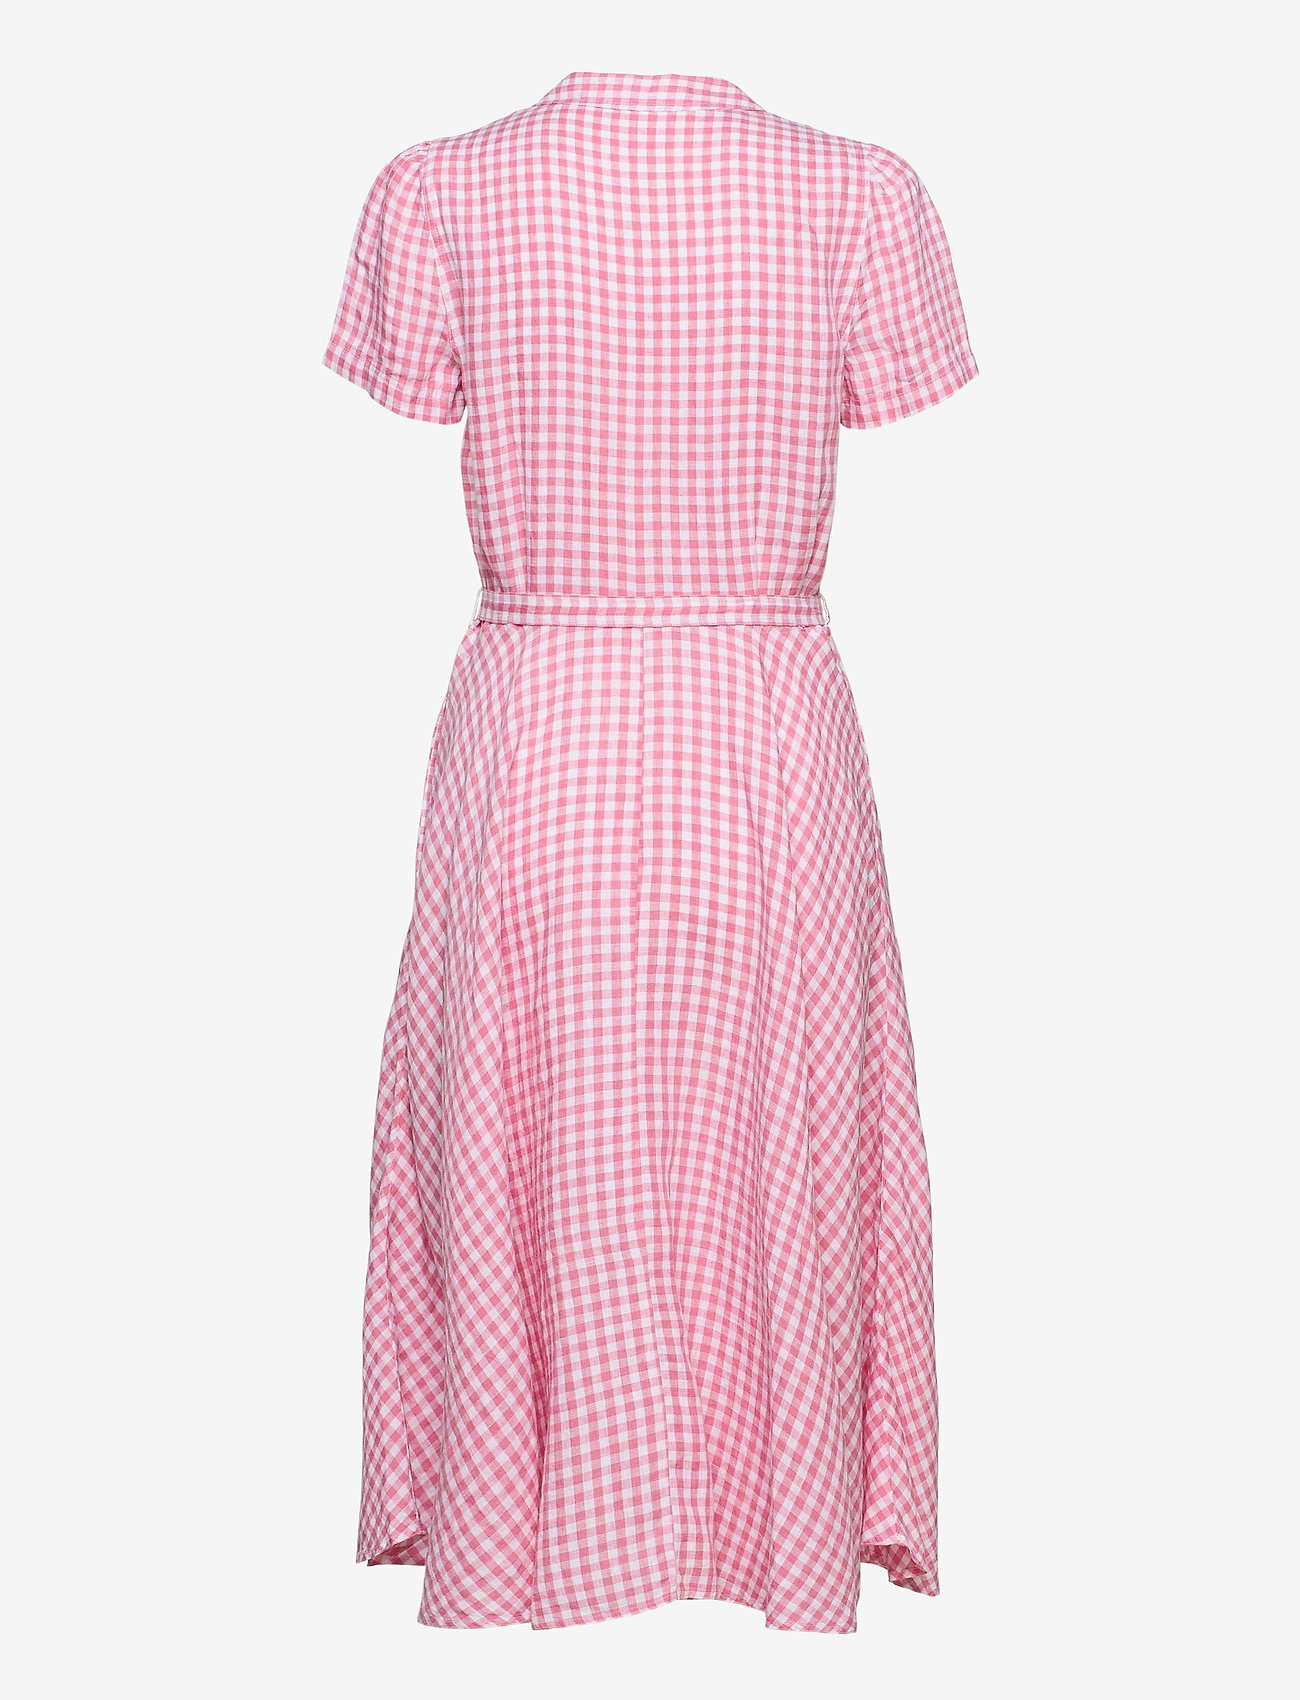 Polo Ralph Lauren - Gingham Linen Shirtdress - sommerkjoler - 918 ribbon pink/w - 1